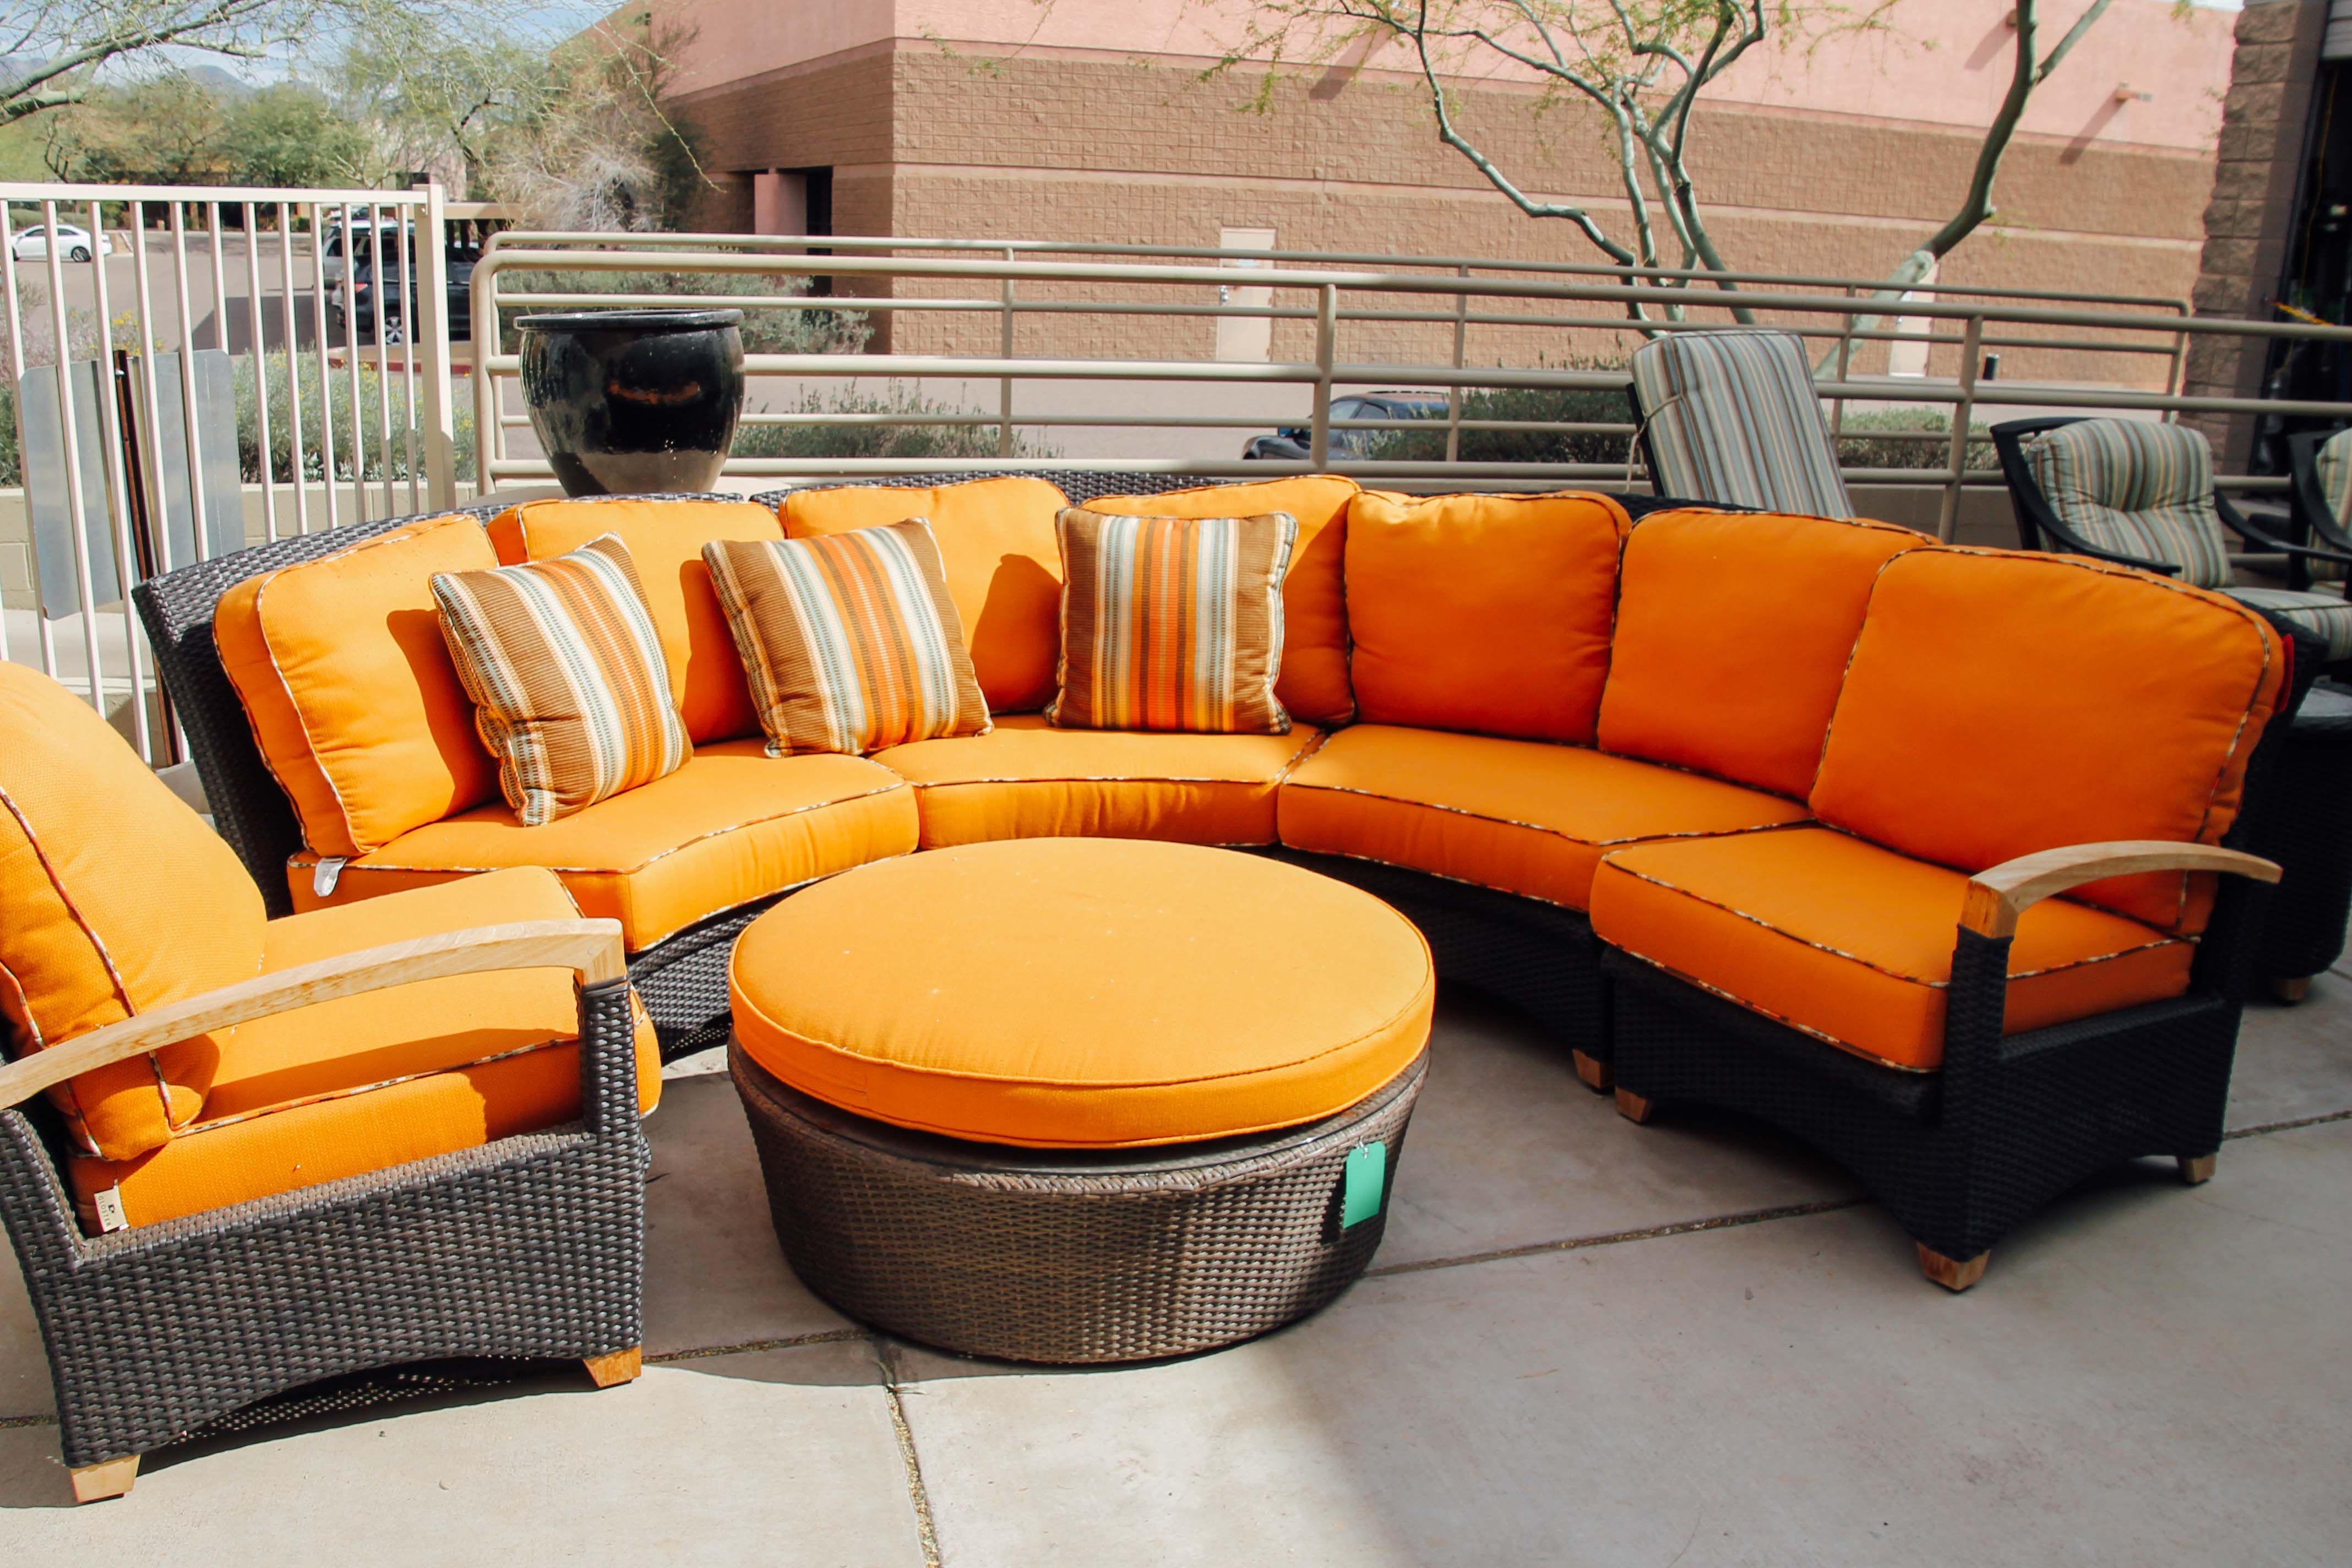 Orange patio furniture found at Avery Lane Fine Consignment in